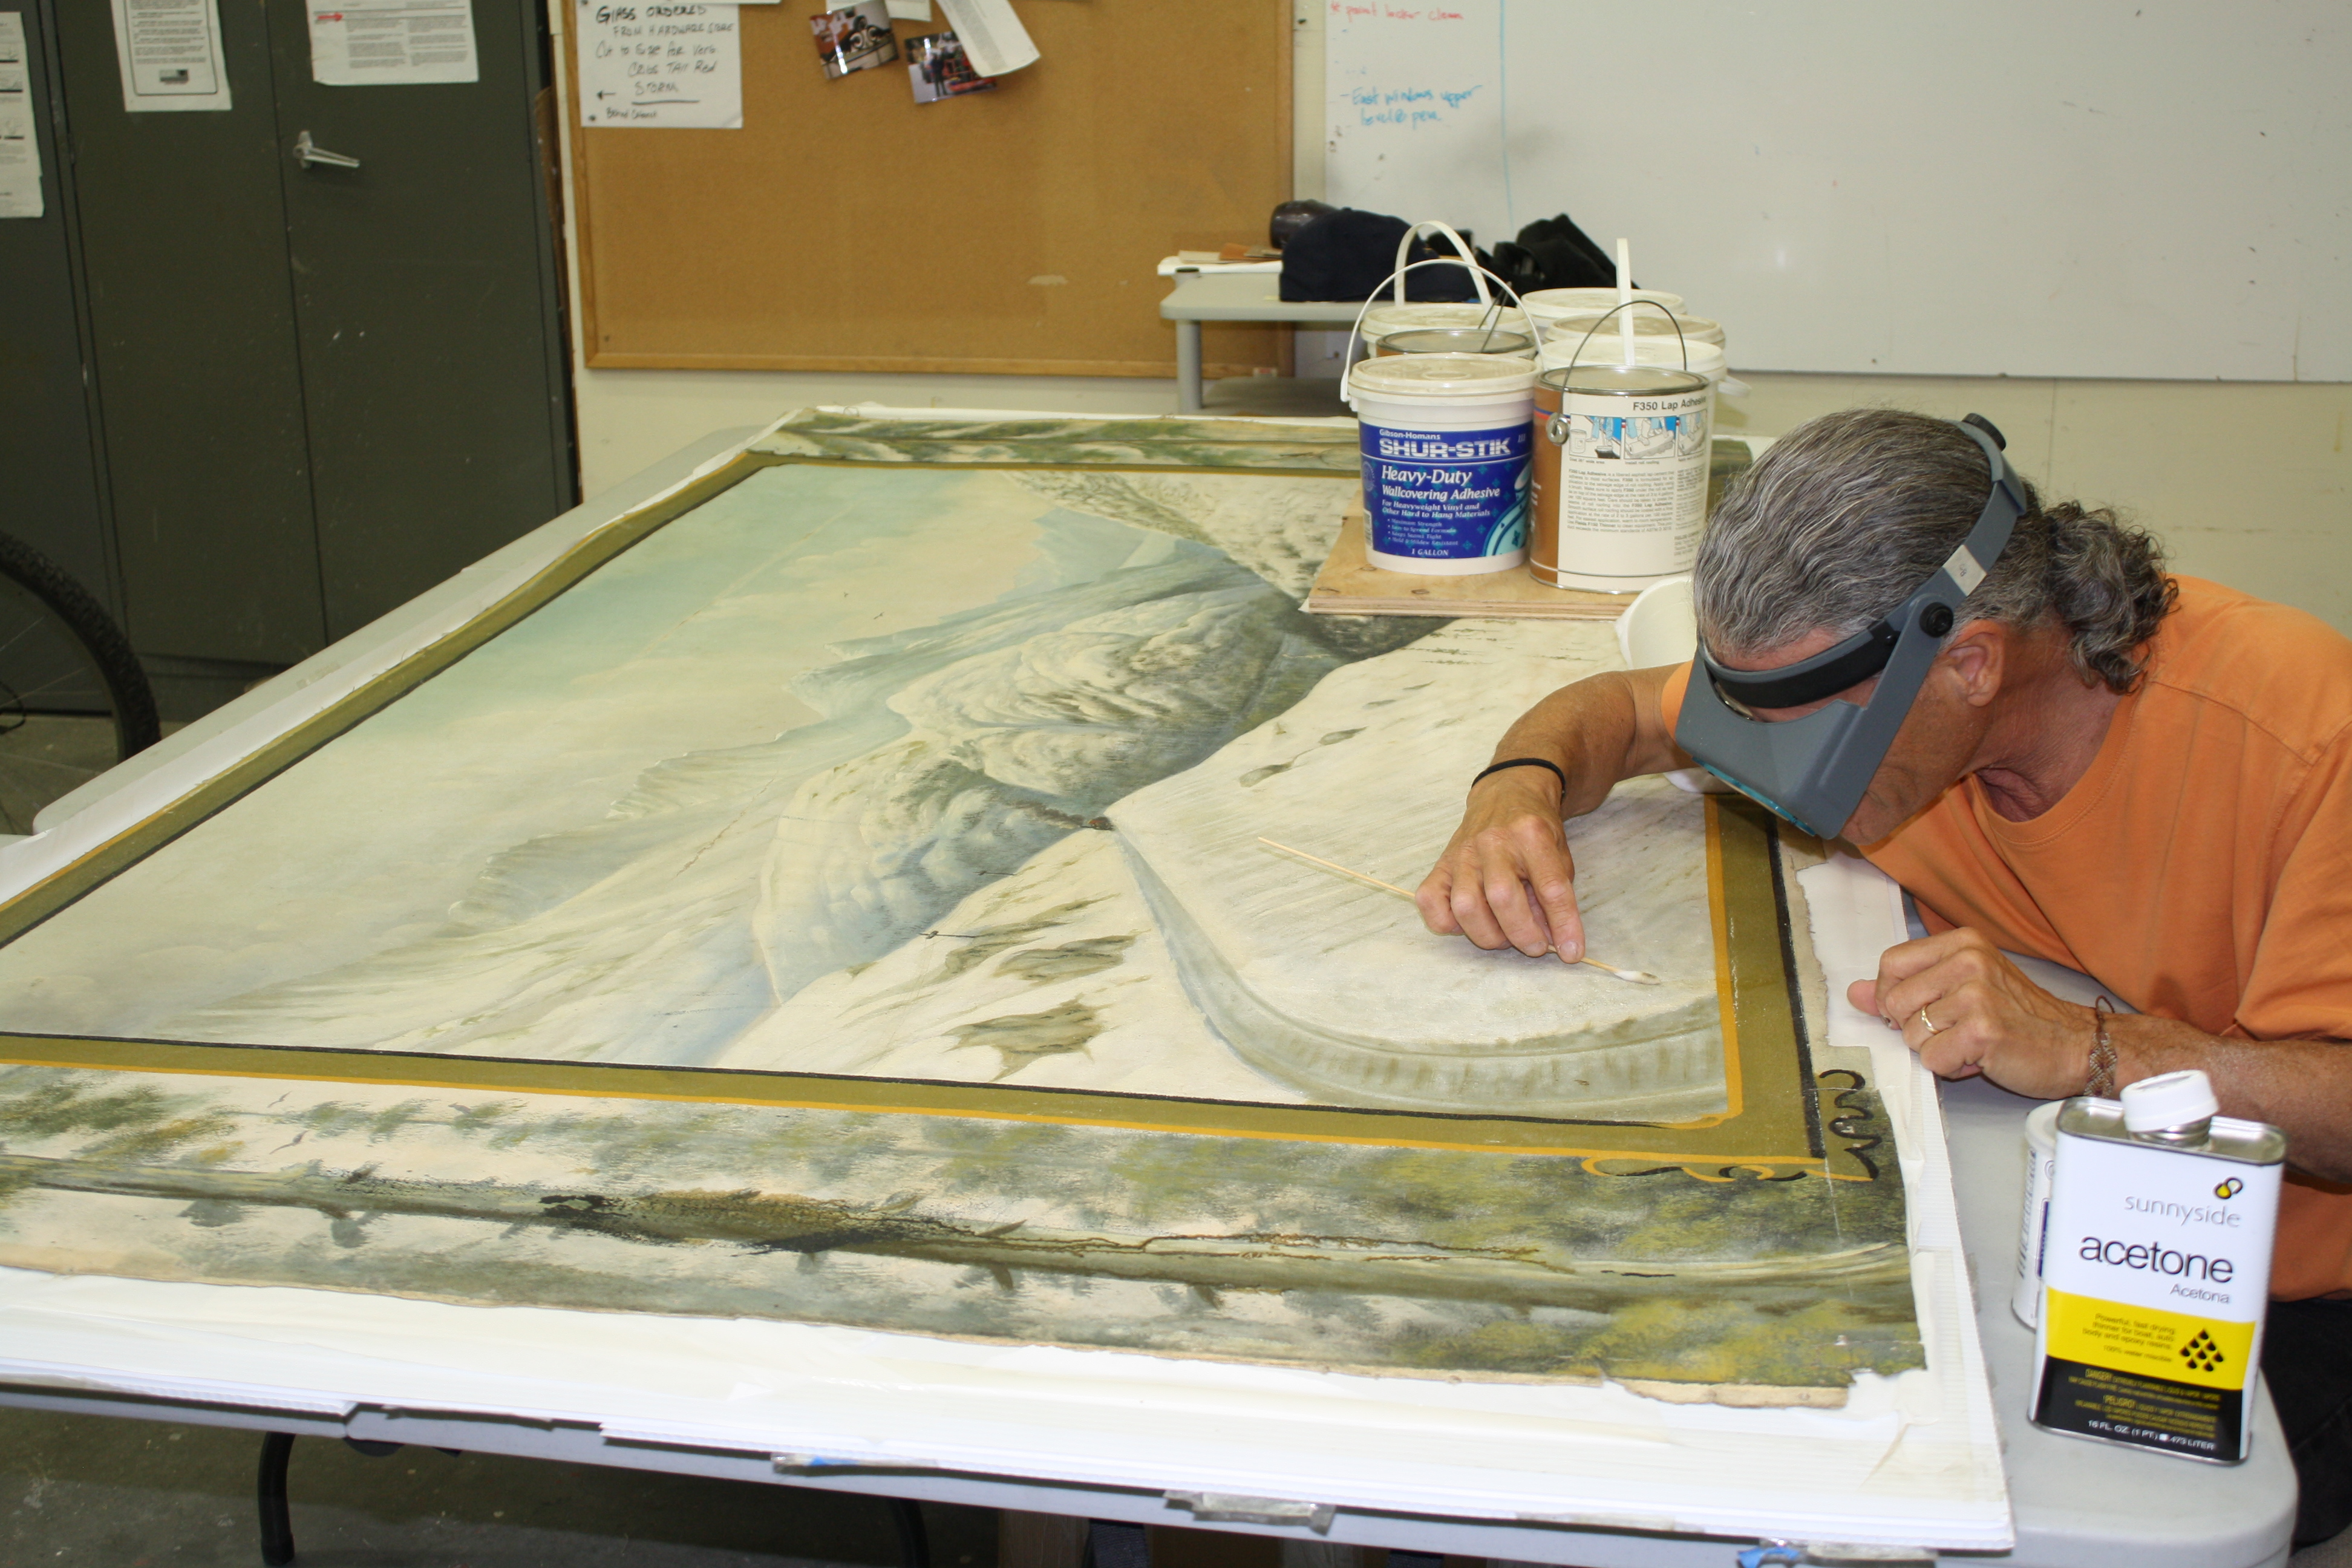 A man works on a painting with cleaning tools.